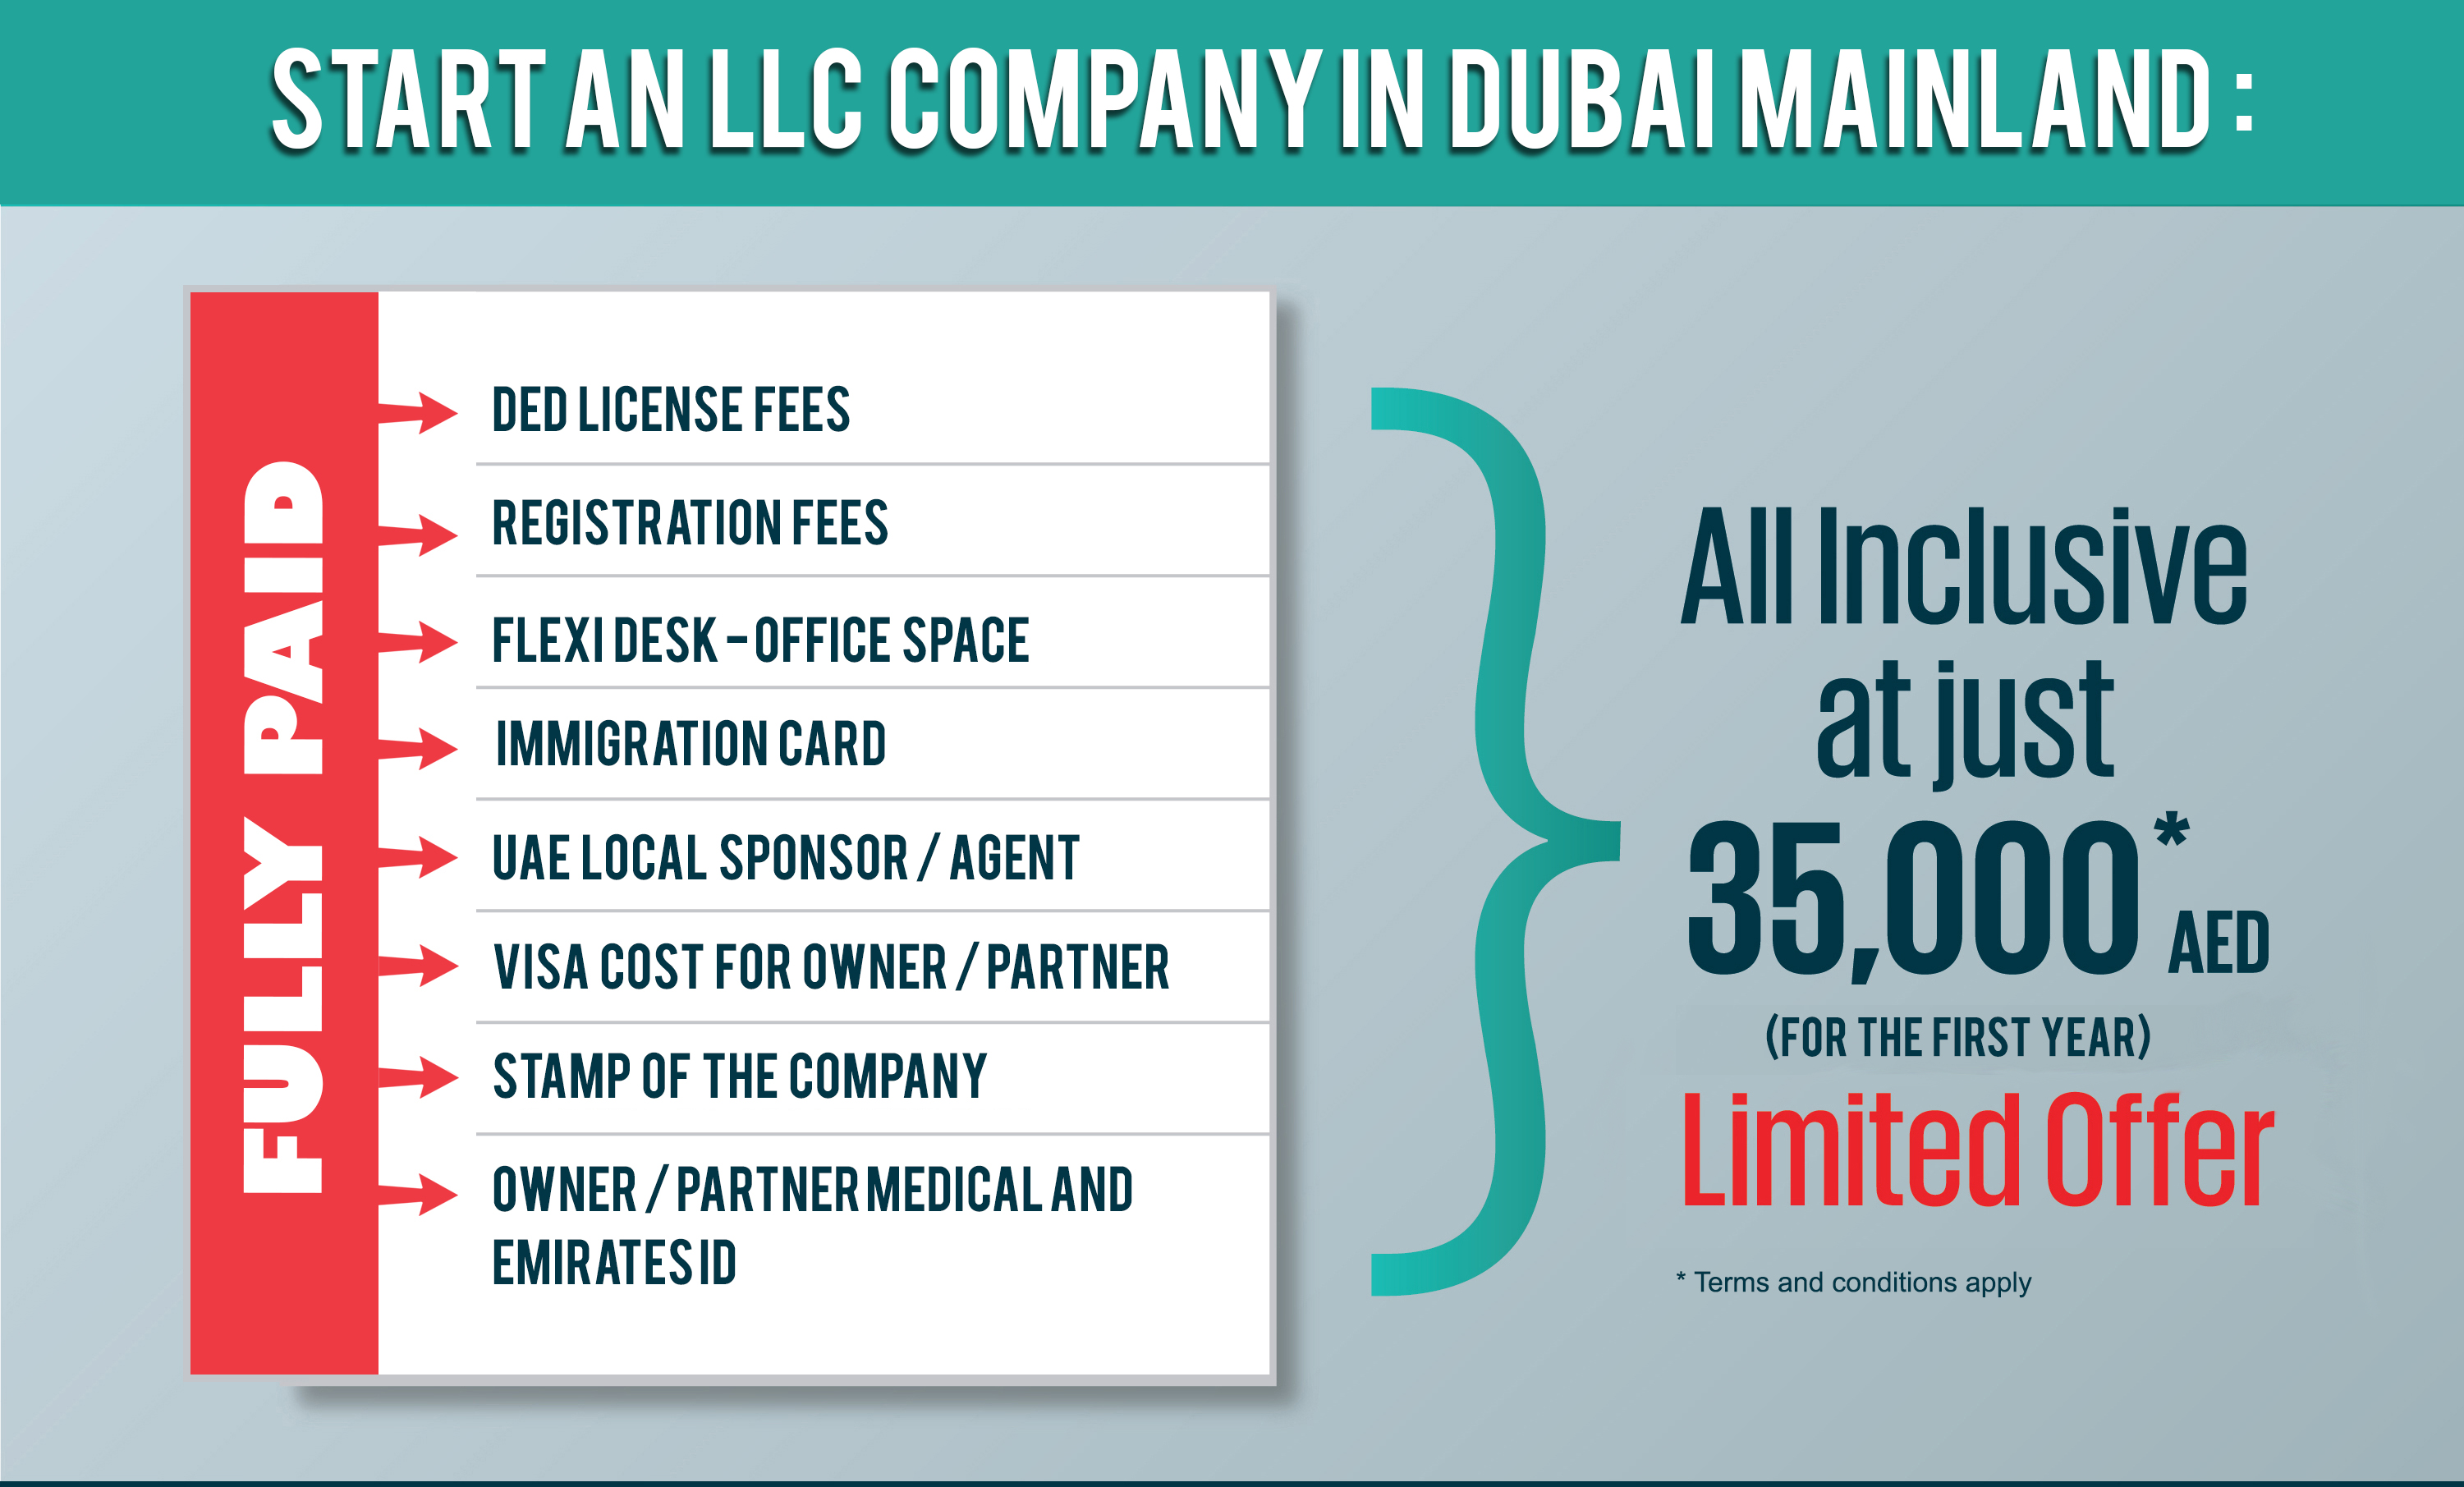 start a LLC Mainland company in Dubai